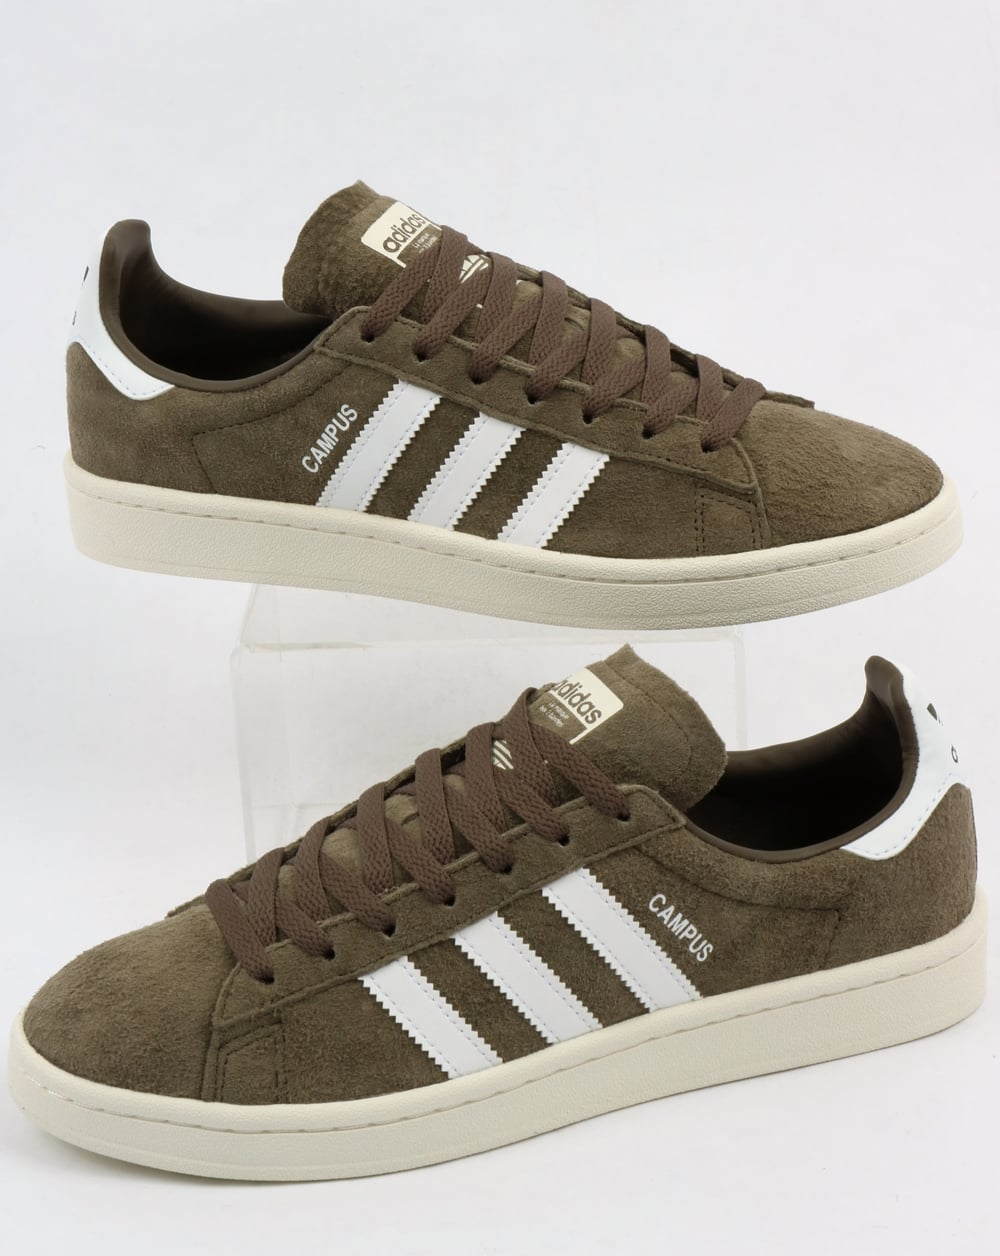 wholesale dealer 5ae9c aca16 adidas Trainers Adidas Campus Trainers Branch GreenWhite